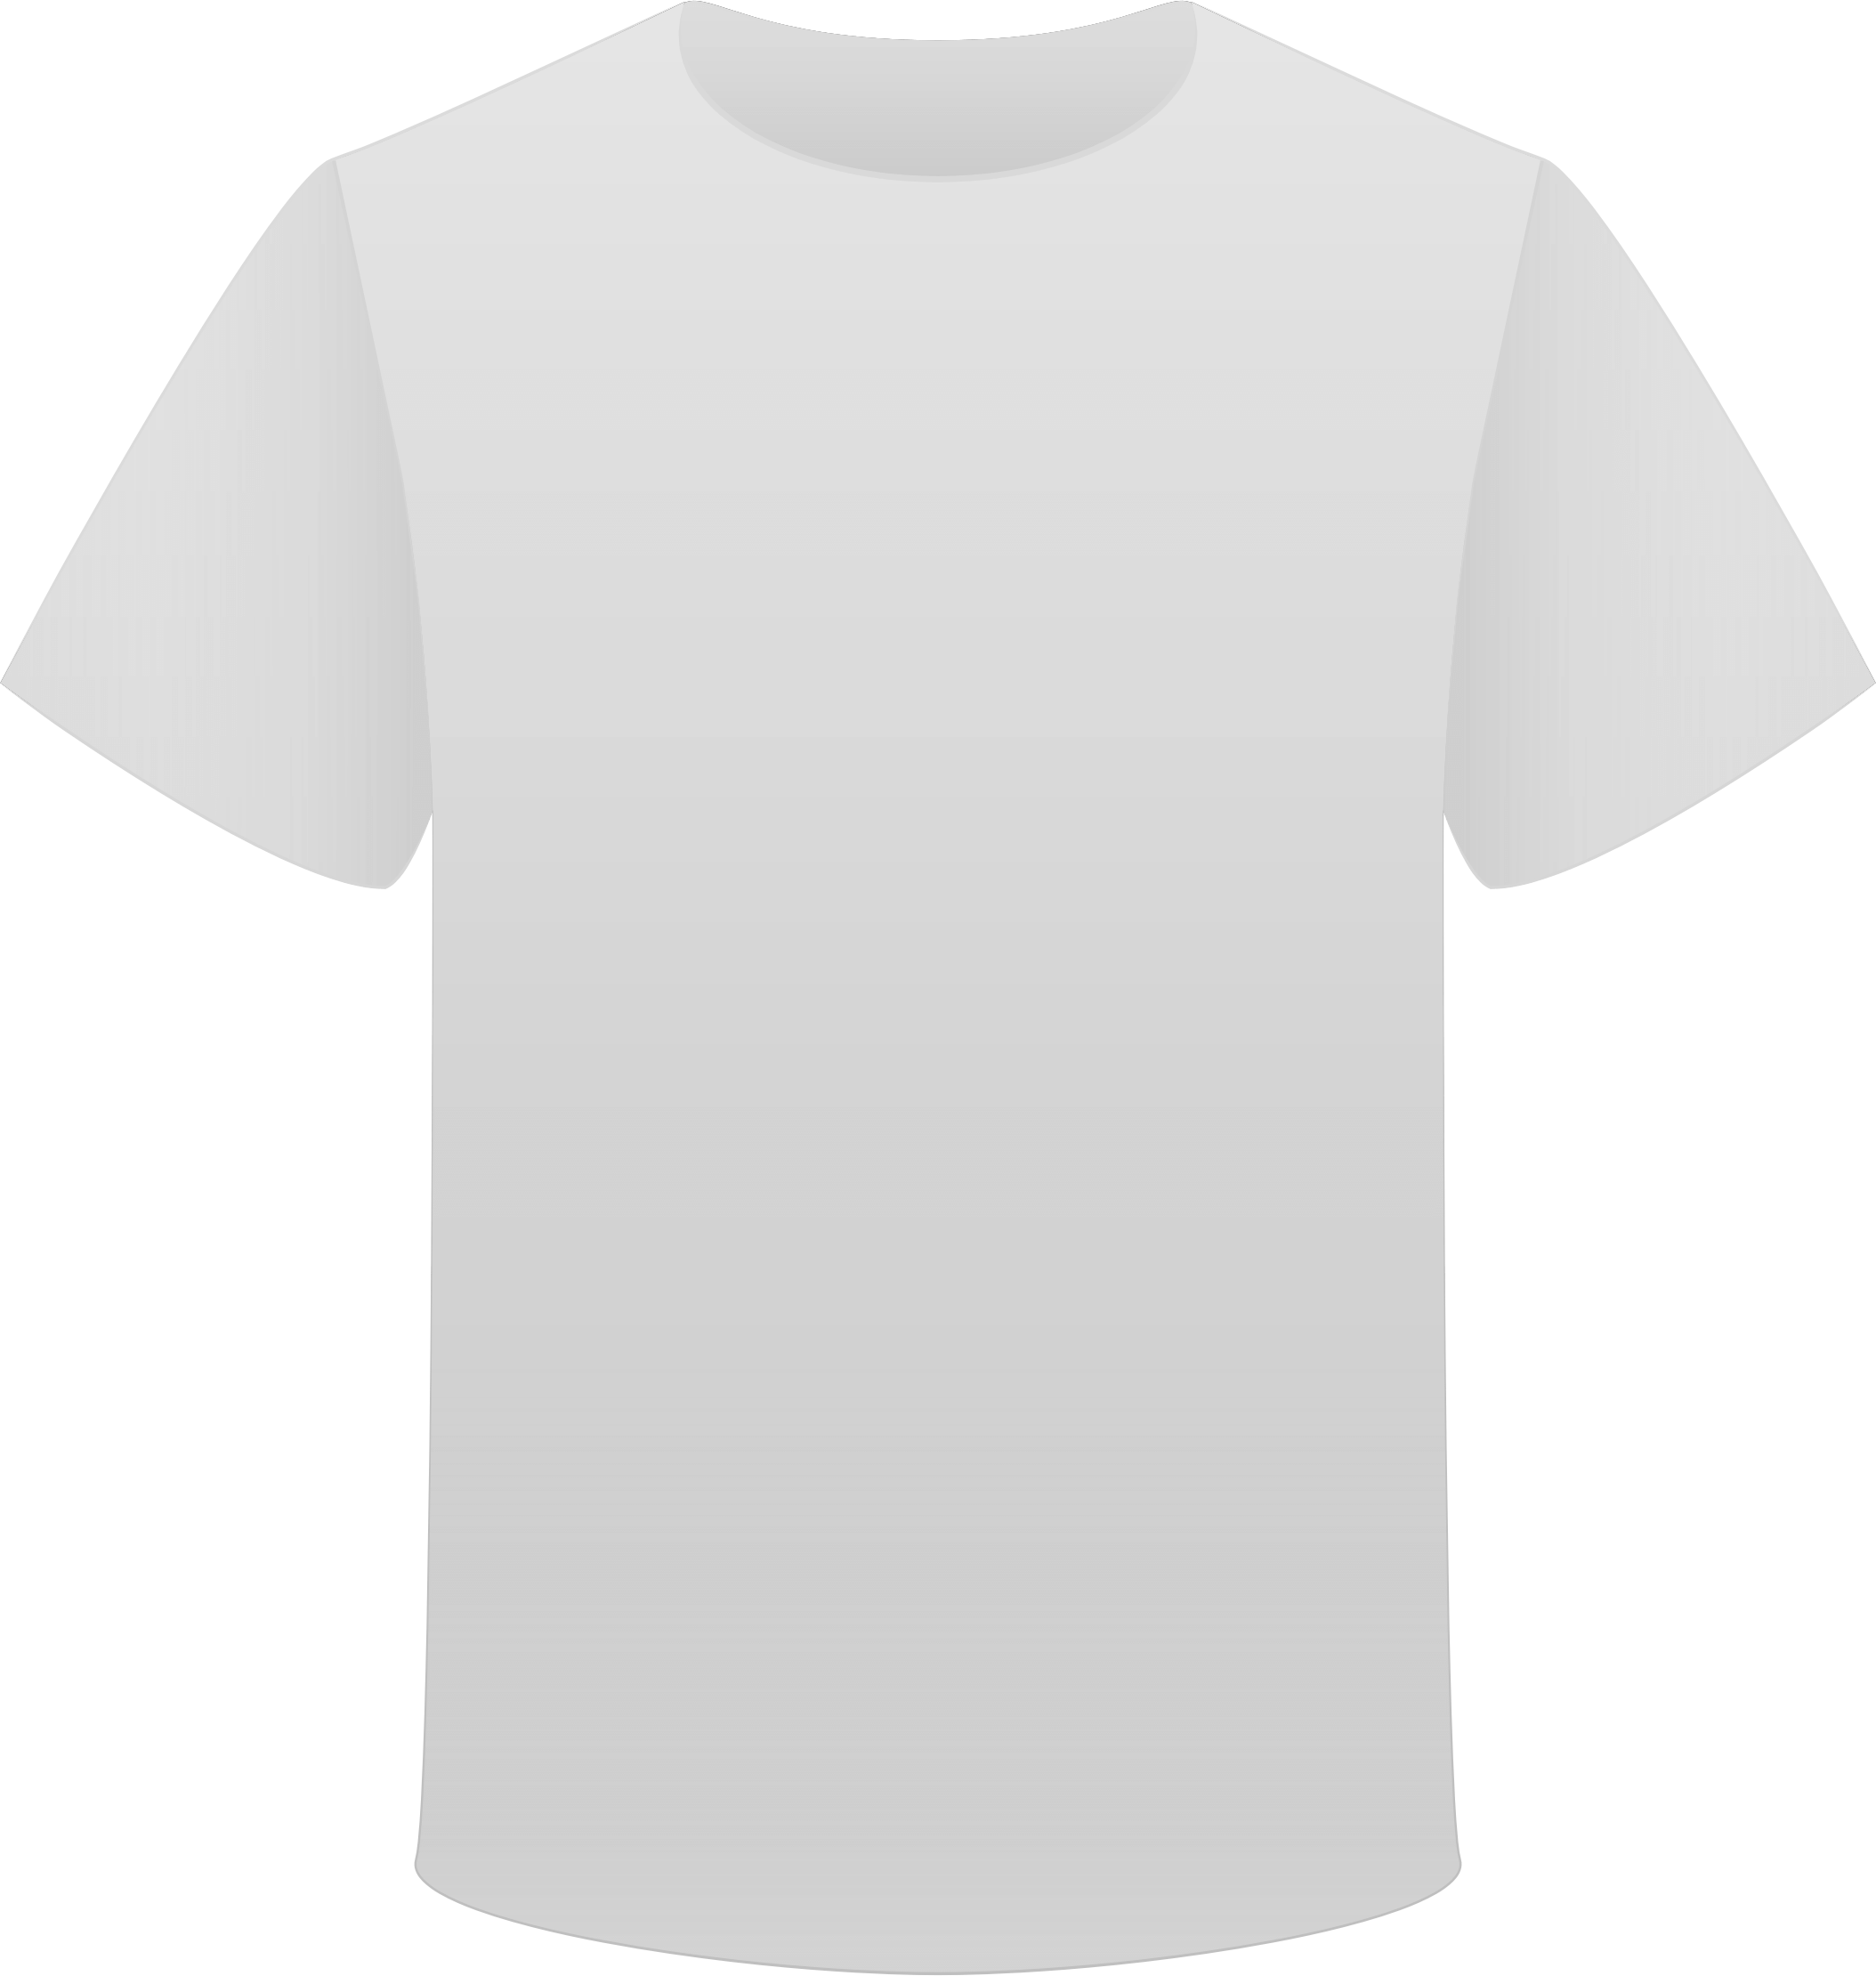 White clipart transparent stickpng. Tshirt png graphic free